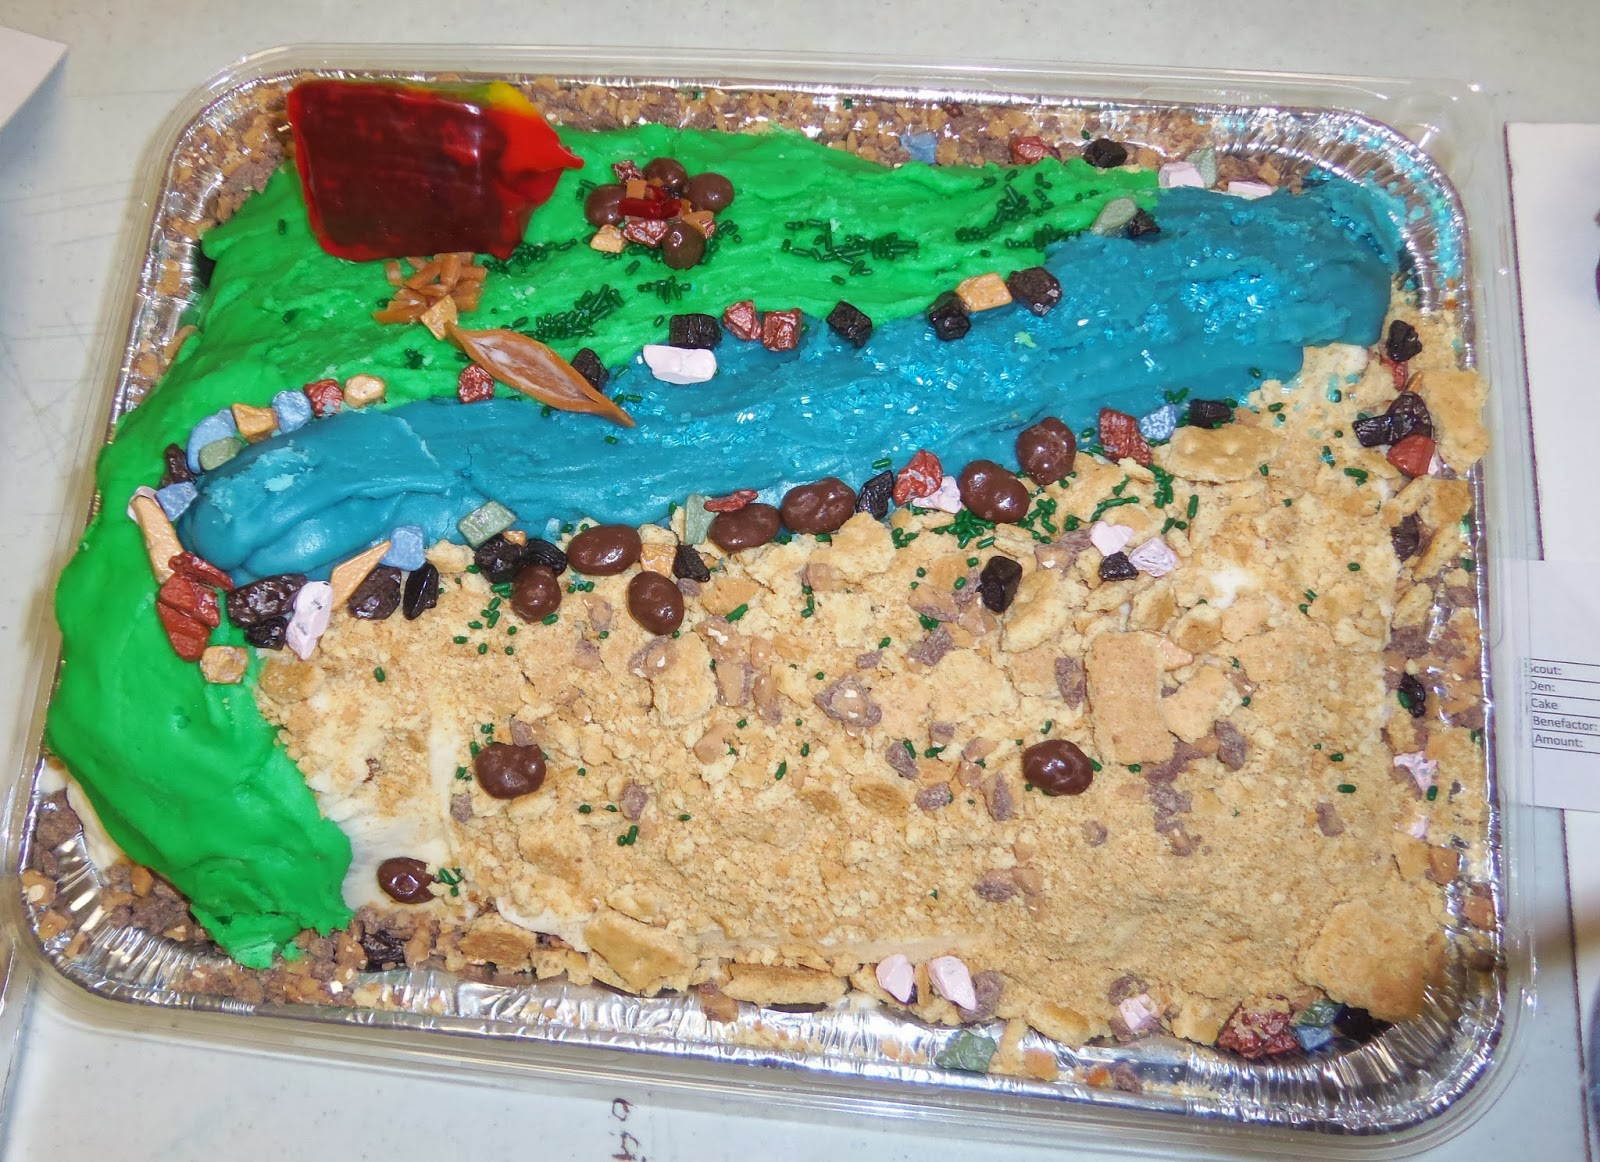 BoyScout Cakes, Cakes, Homemade Cakes, Troop Cakes, Camping Cakes, Camping, Canoe, Tents